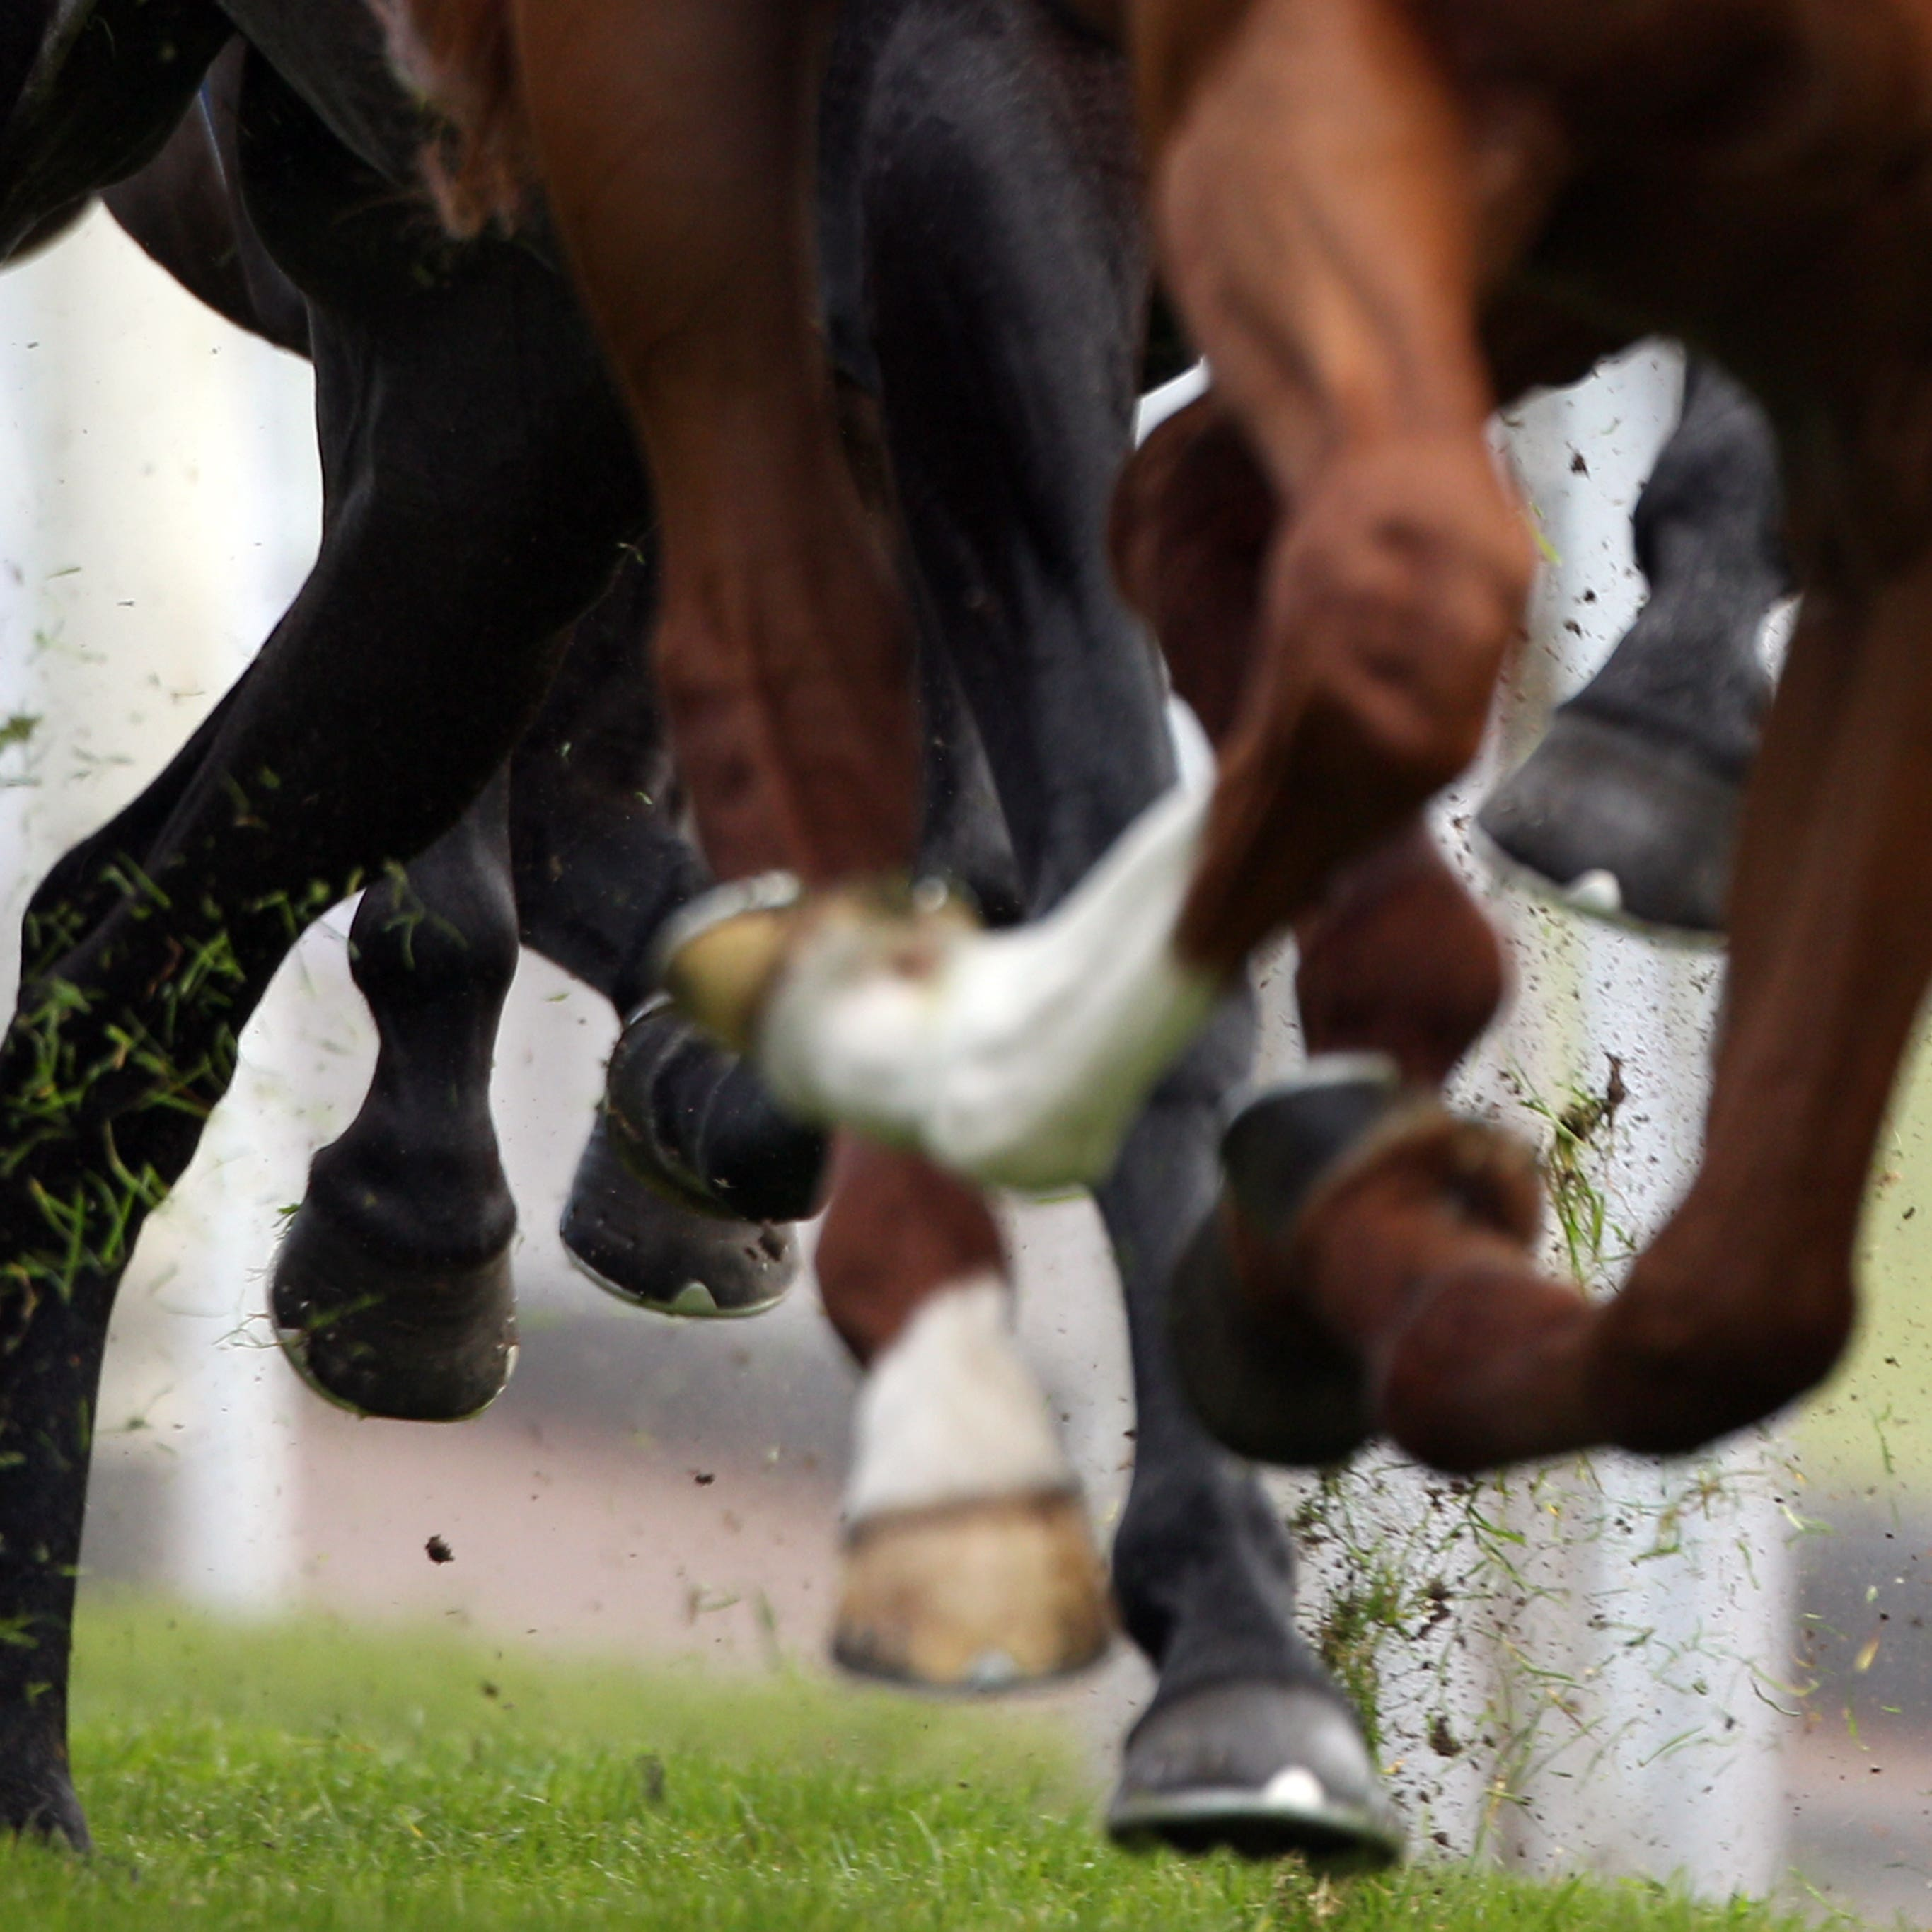 Monday's meeting at Tramore has been abandoned